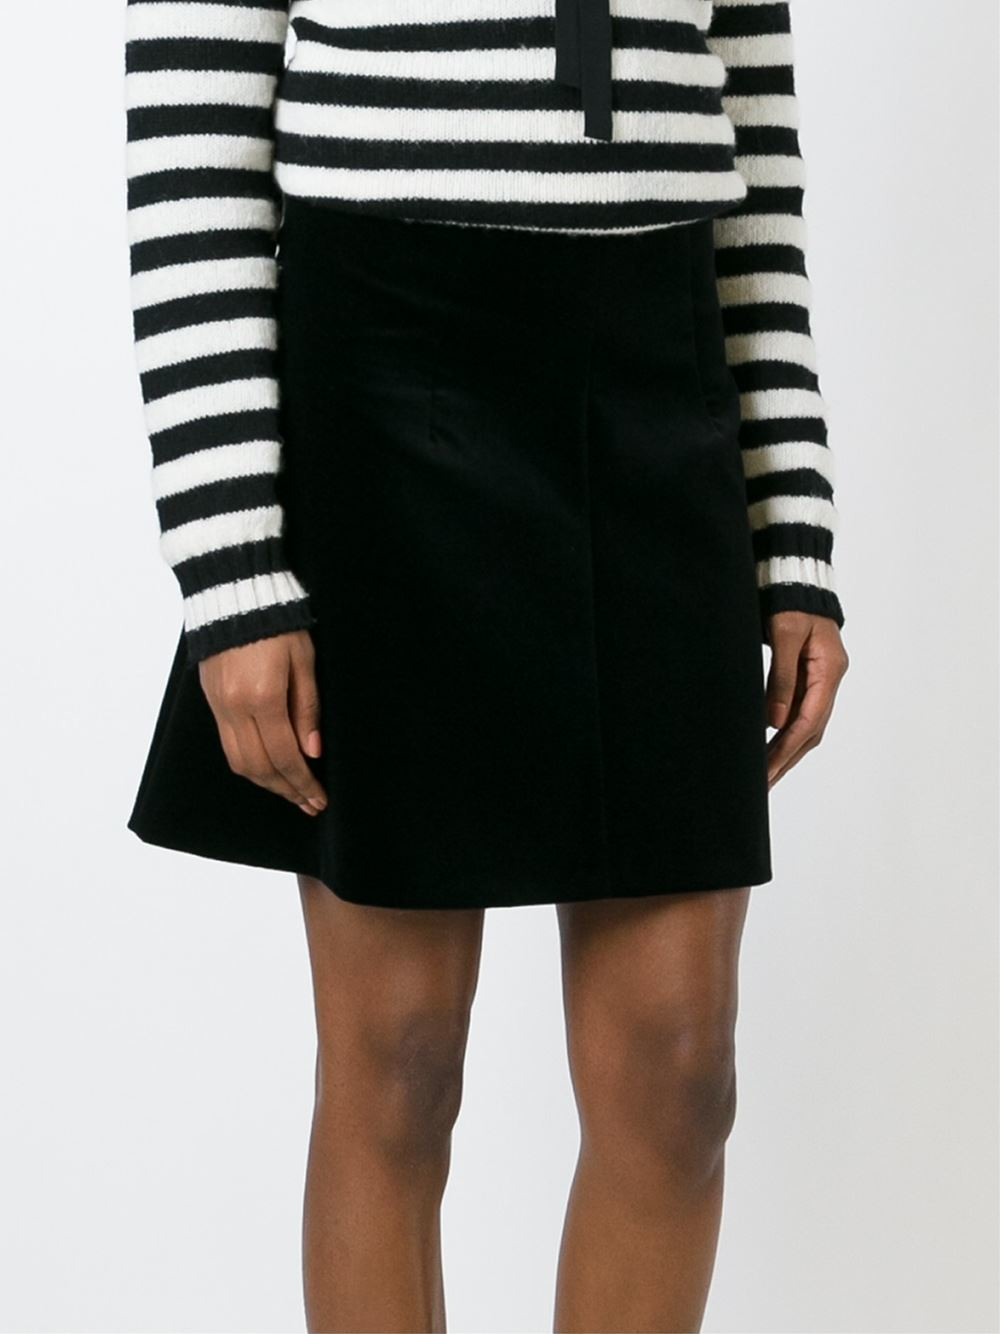 Red valentino Velvet A-line Skirt in Black | Lyst